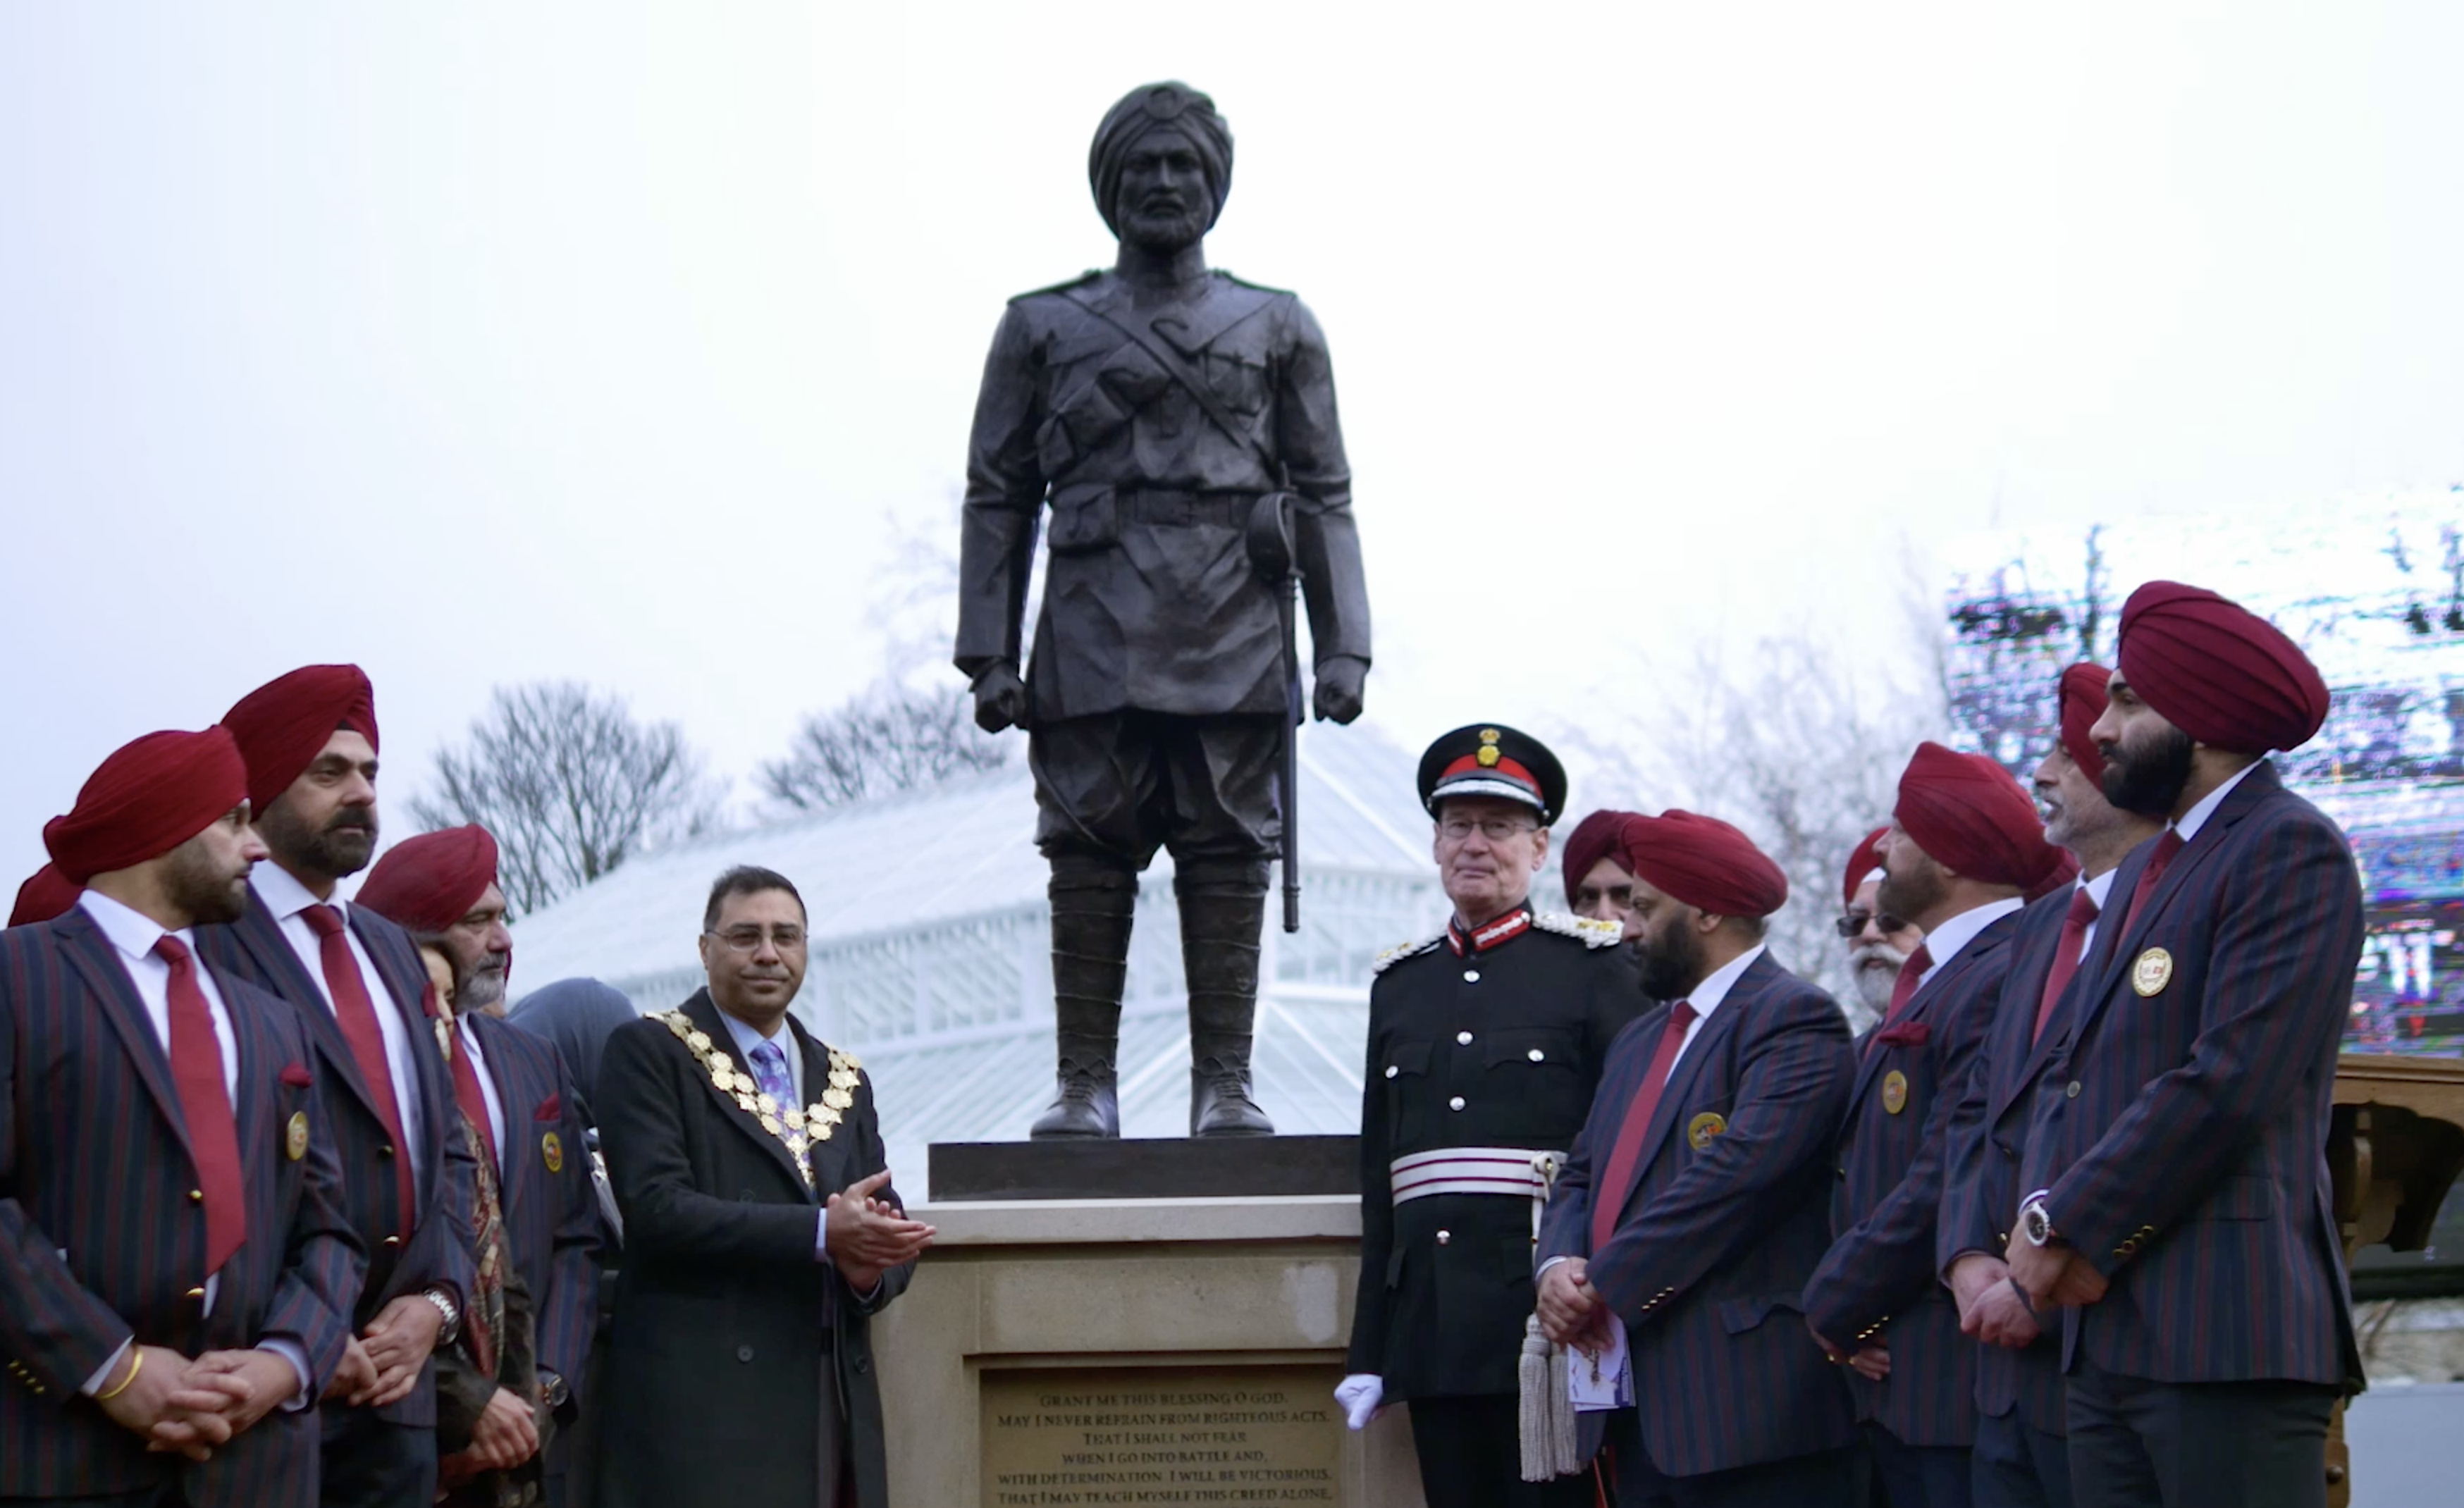 Sikh Soldier Statue unveiled in Greenhead Park